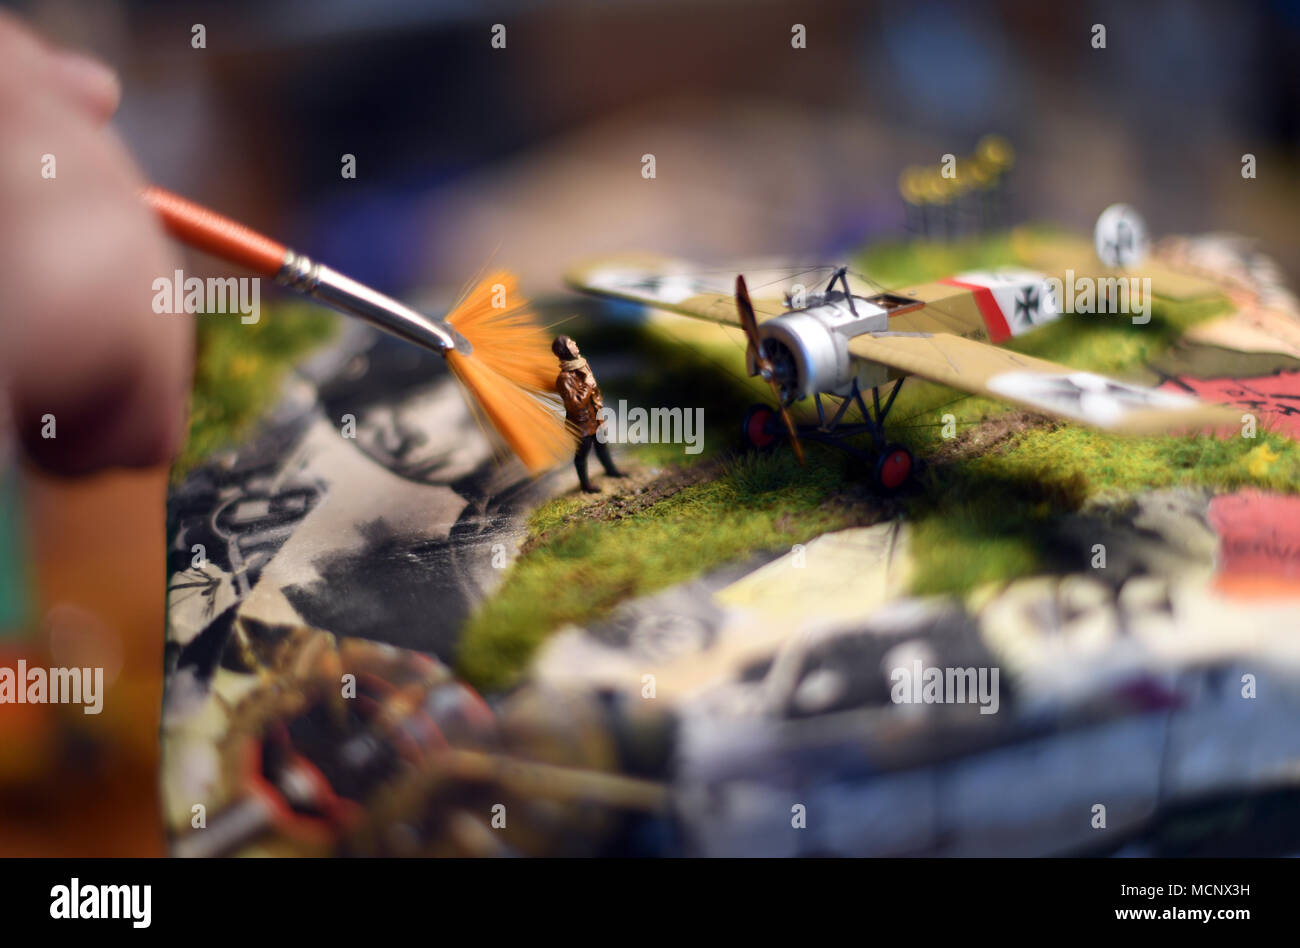 17 April 2018, Duesseldorf, Germany: The model builder Lutz Bellmann cleaning a 'Fokker E3' Revell model in his private workshop. After the bankruptcy of the parent company Hobbico in the USA, the model builder company is to be sold to a Munich investor group. Photo: Ina Fassbender/dpa - Stock Image